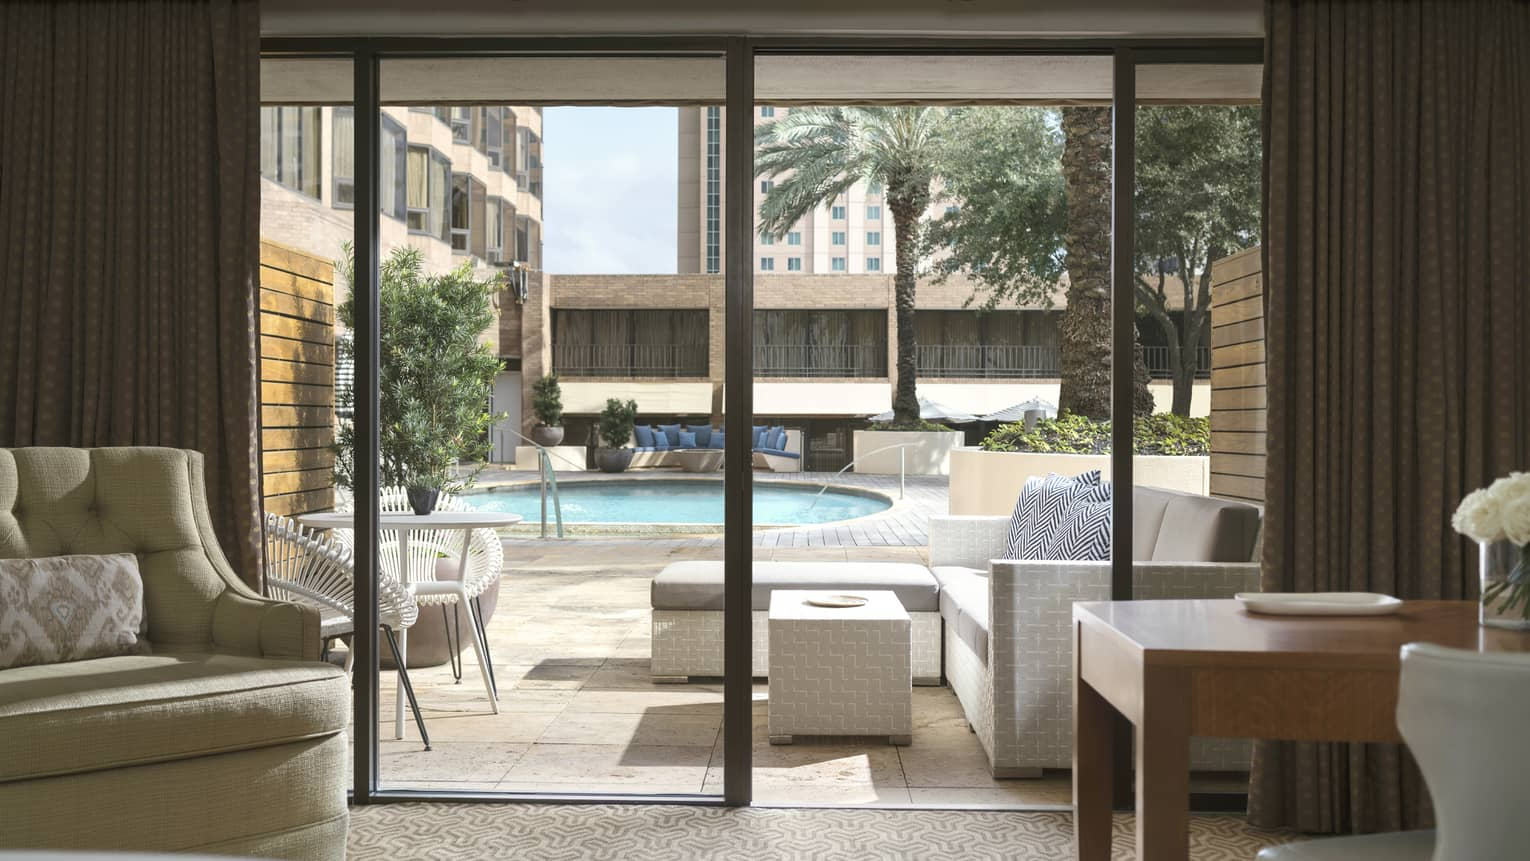 Sliding doors of the king-sized poolside room, looking out at patio and swimming pool